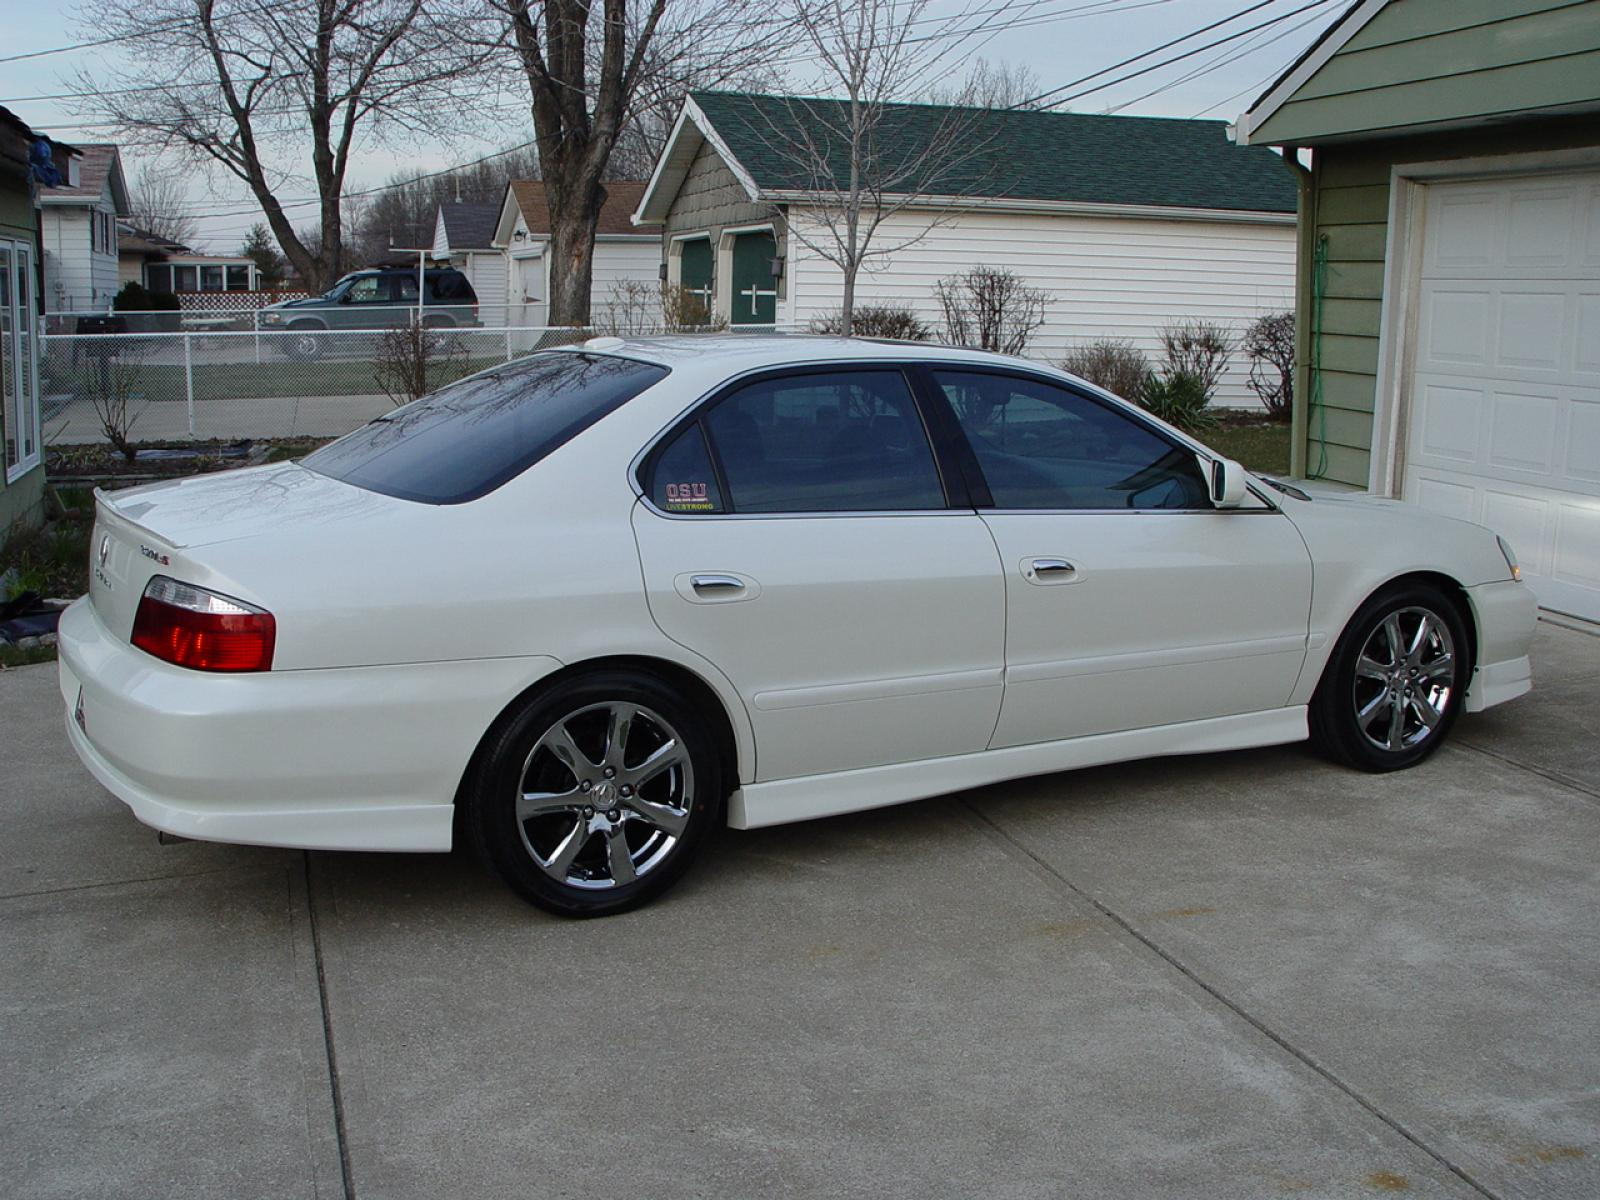 2002 Acura Tl Information And Photos Neo Drive